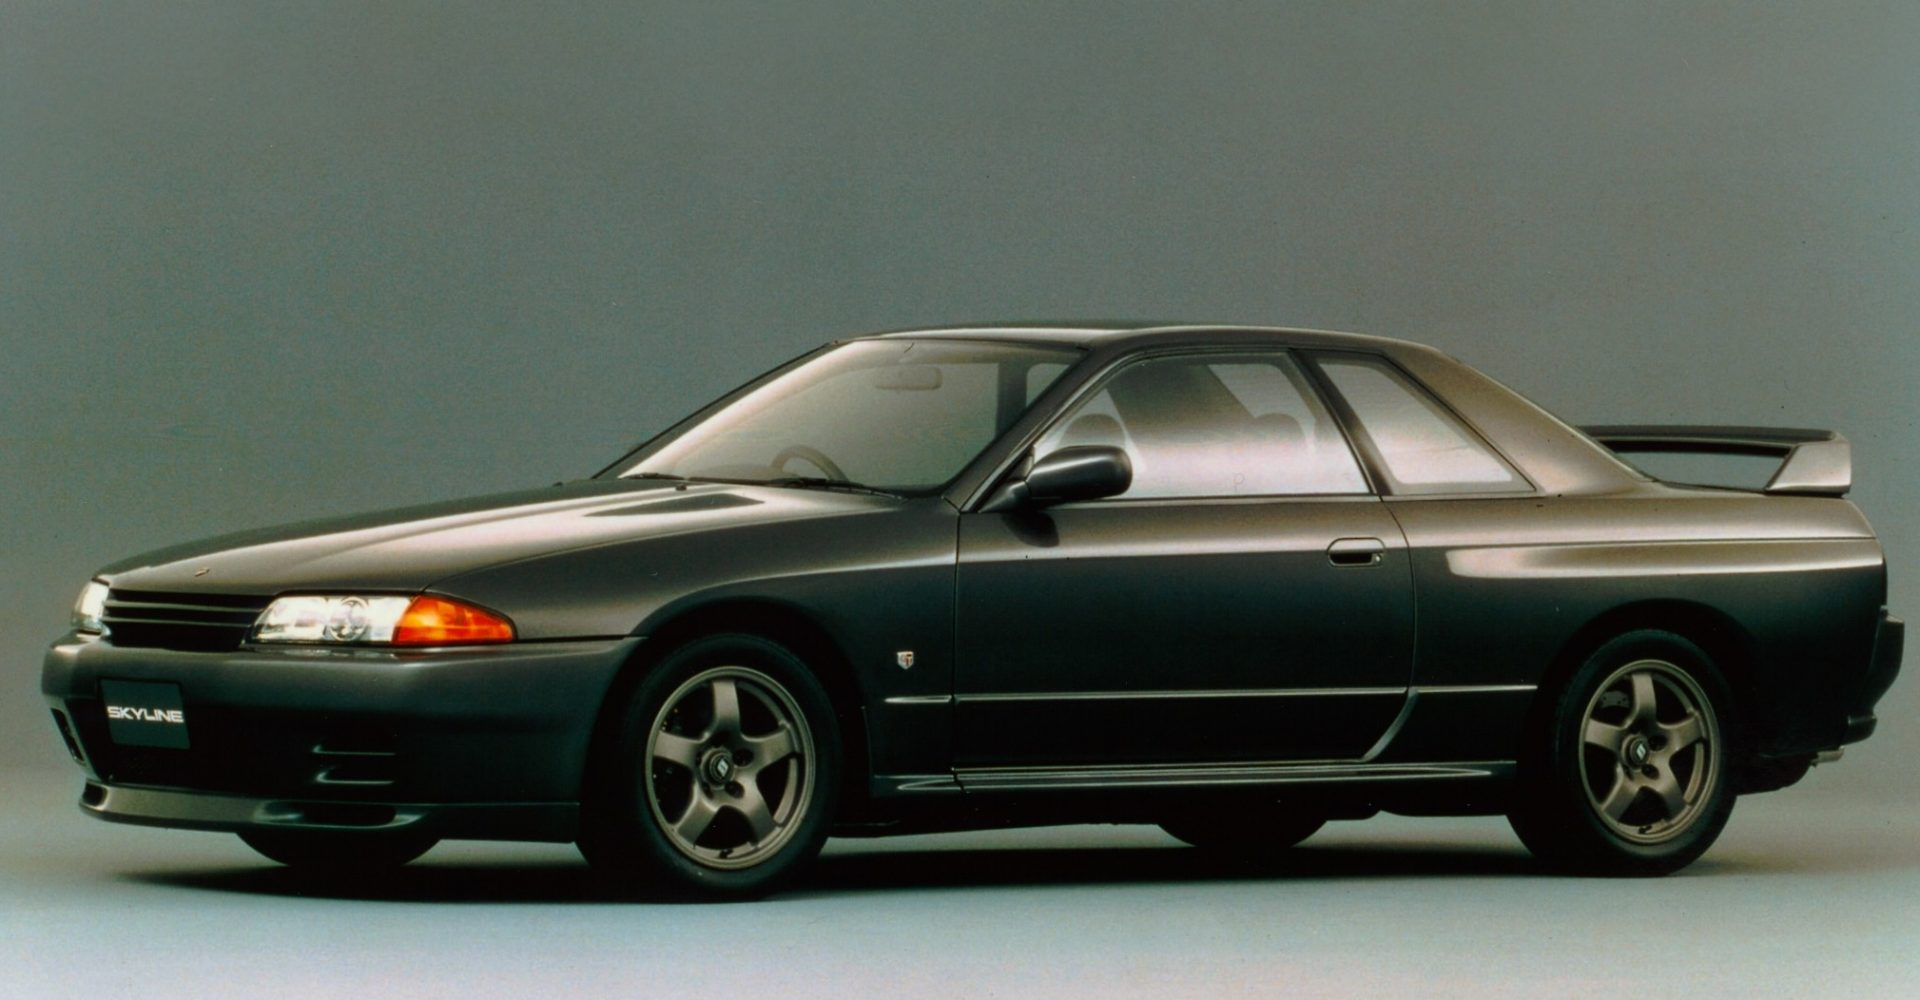 JDM fans, rejoice! Nissan is putting Skyline parts back into production.